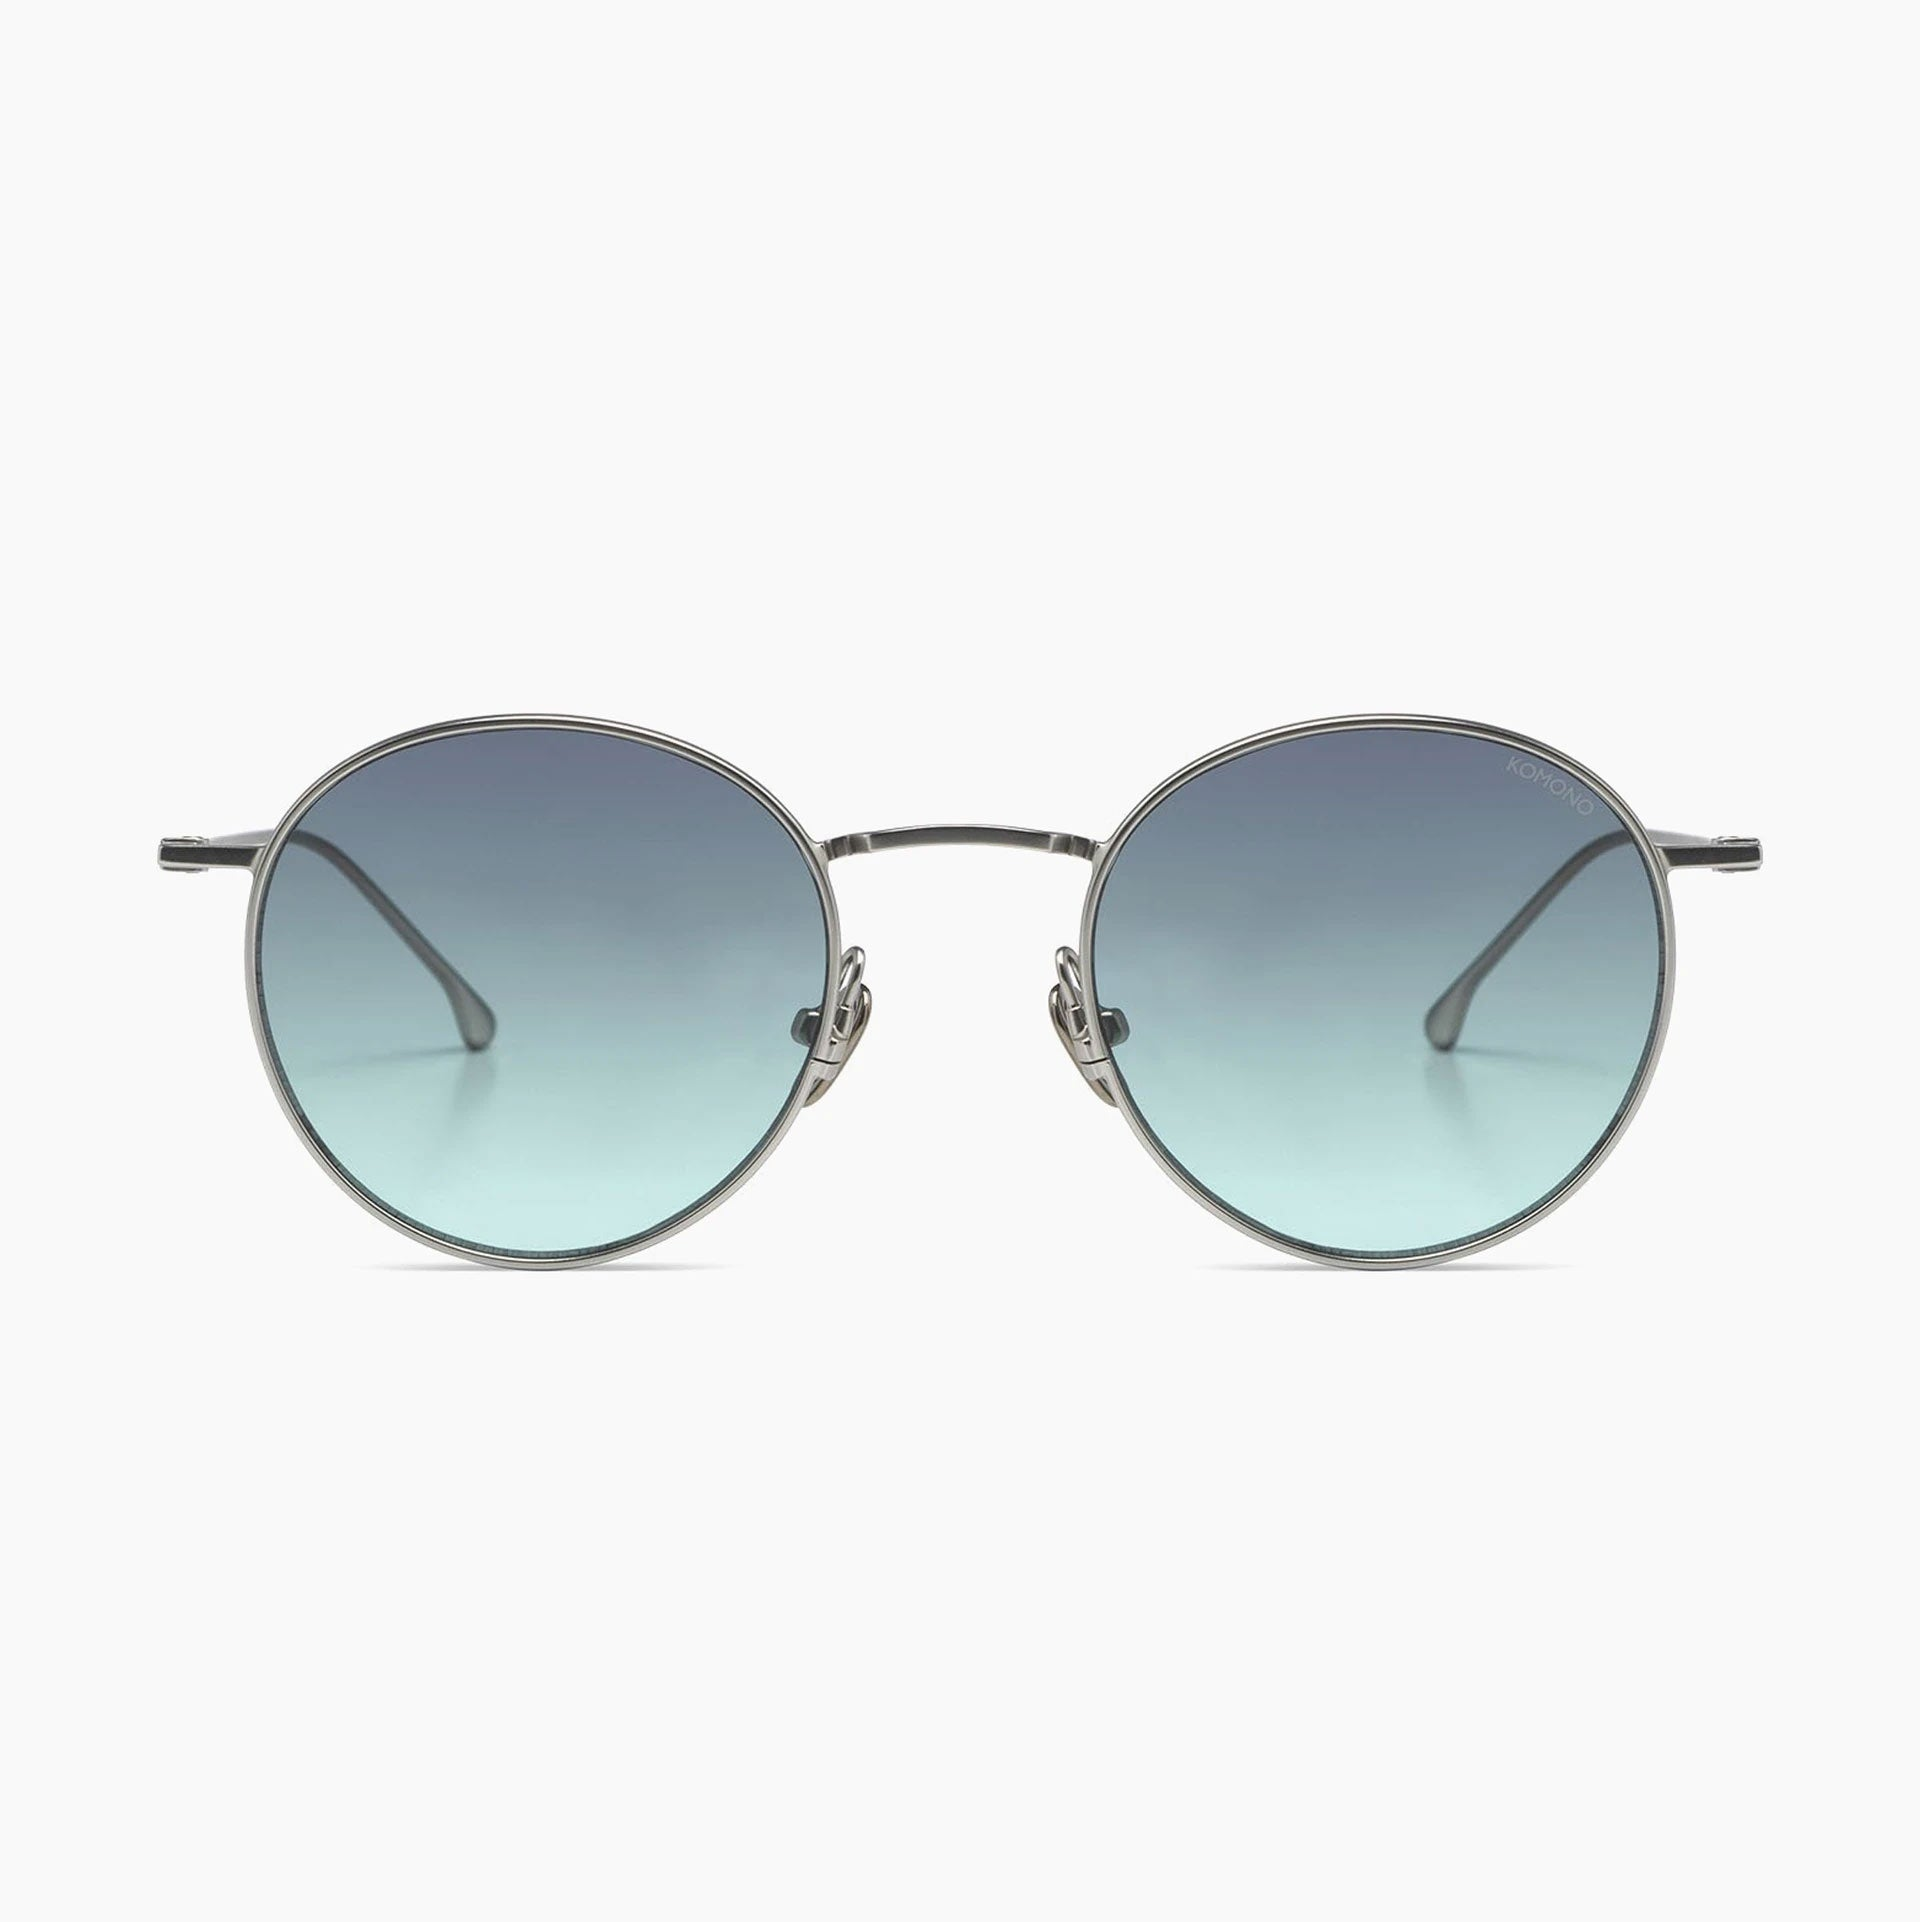 KOMONO Dean Sunglasses | Twilight